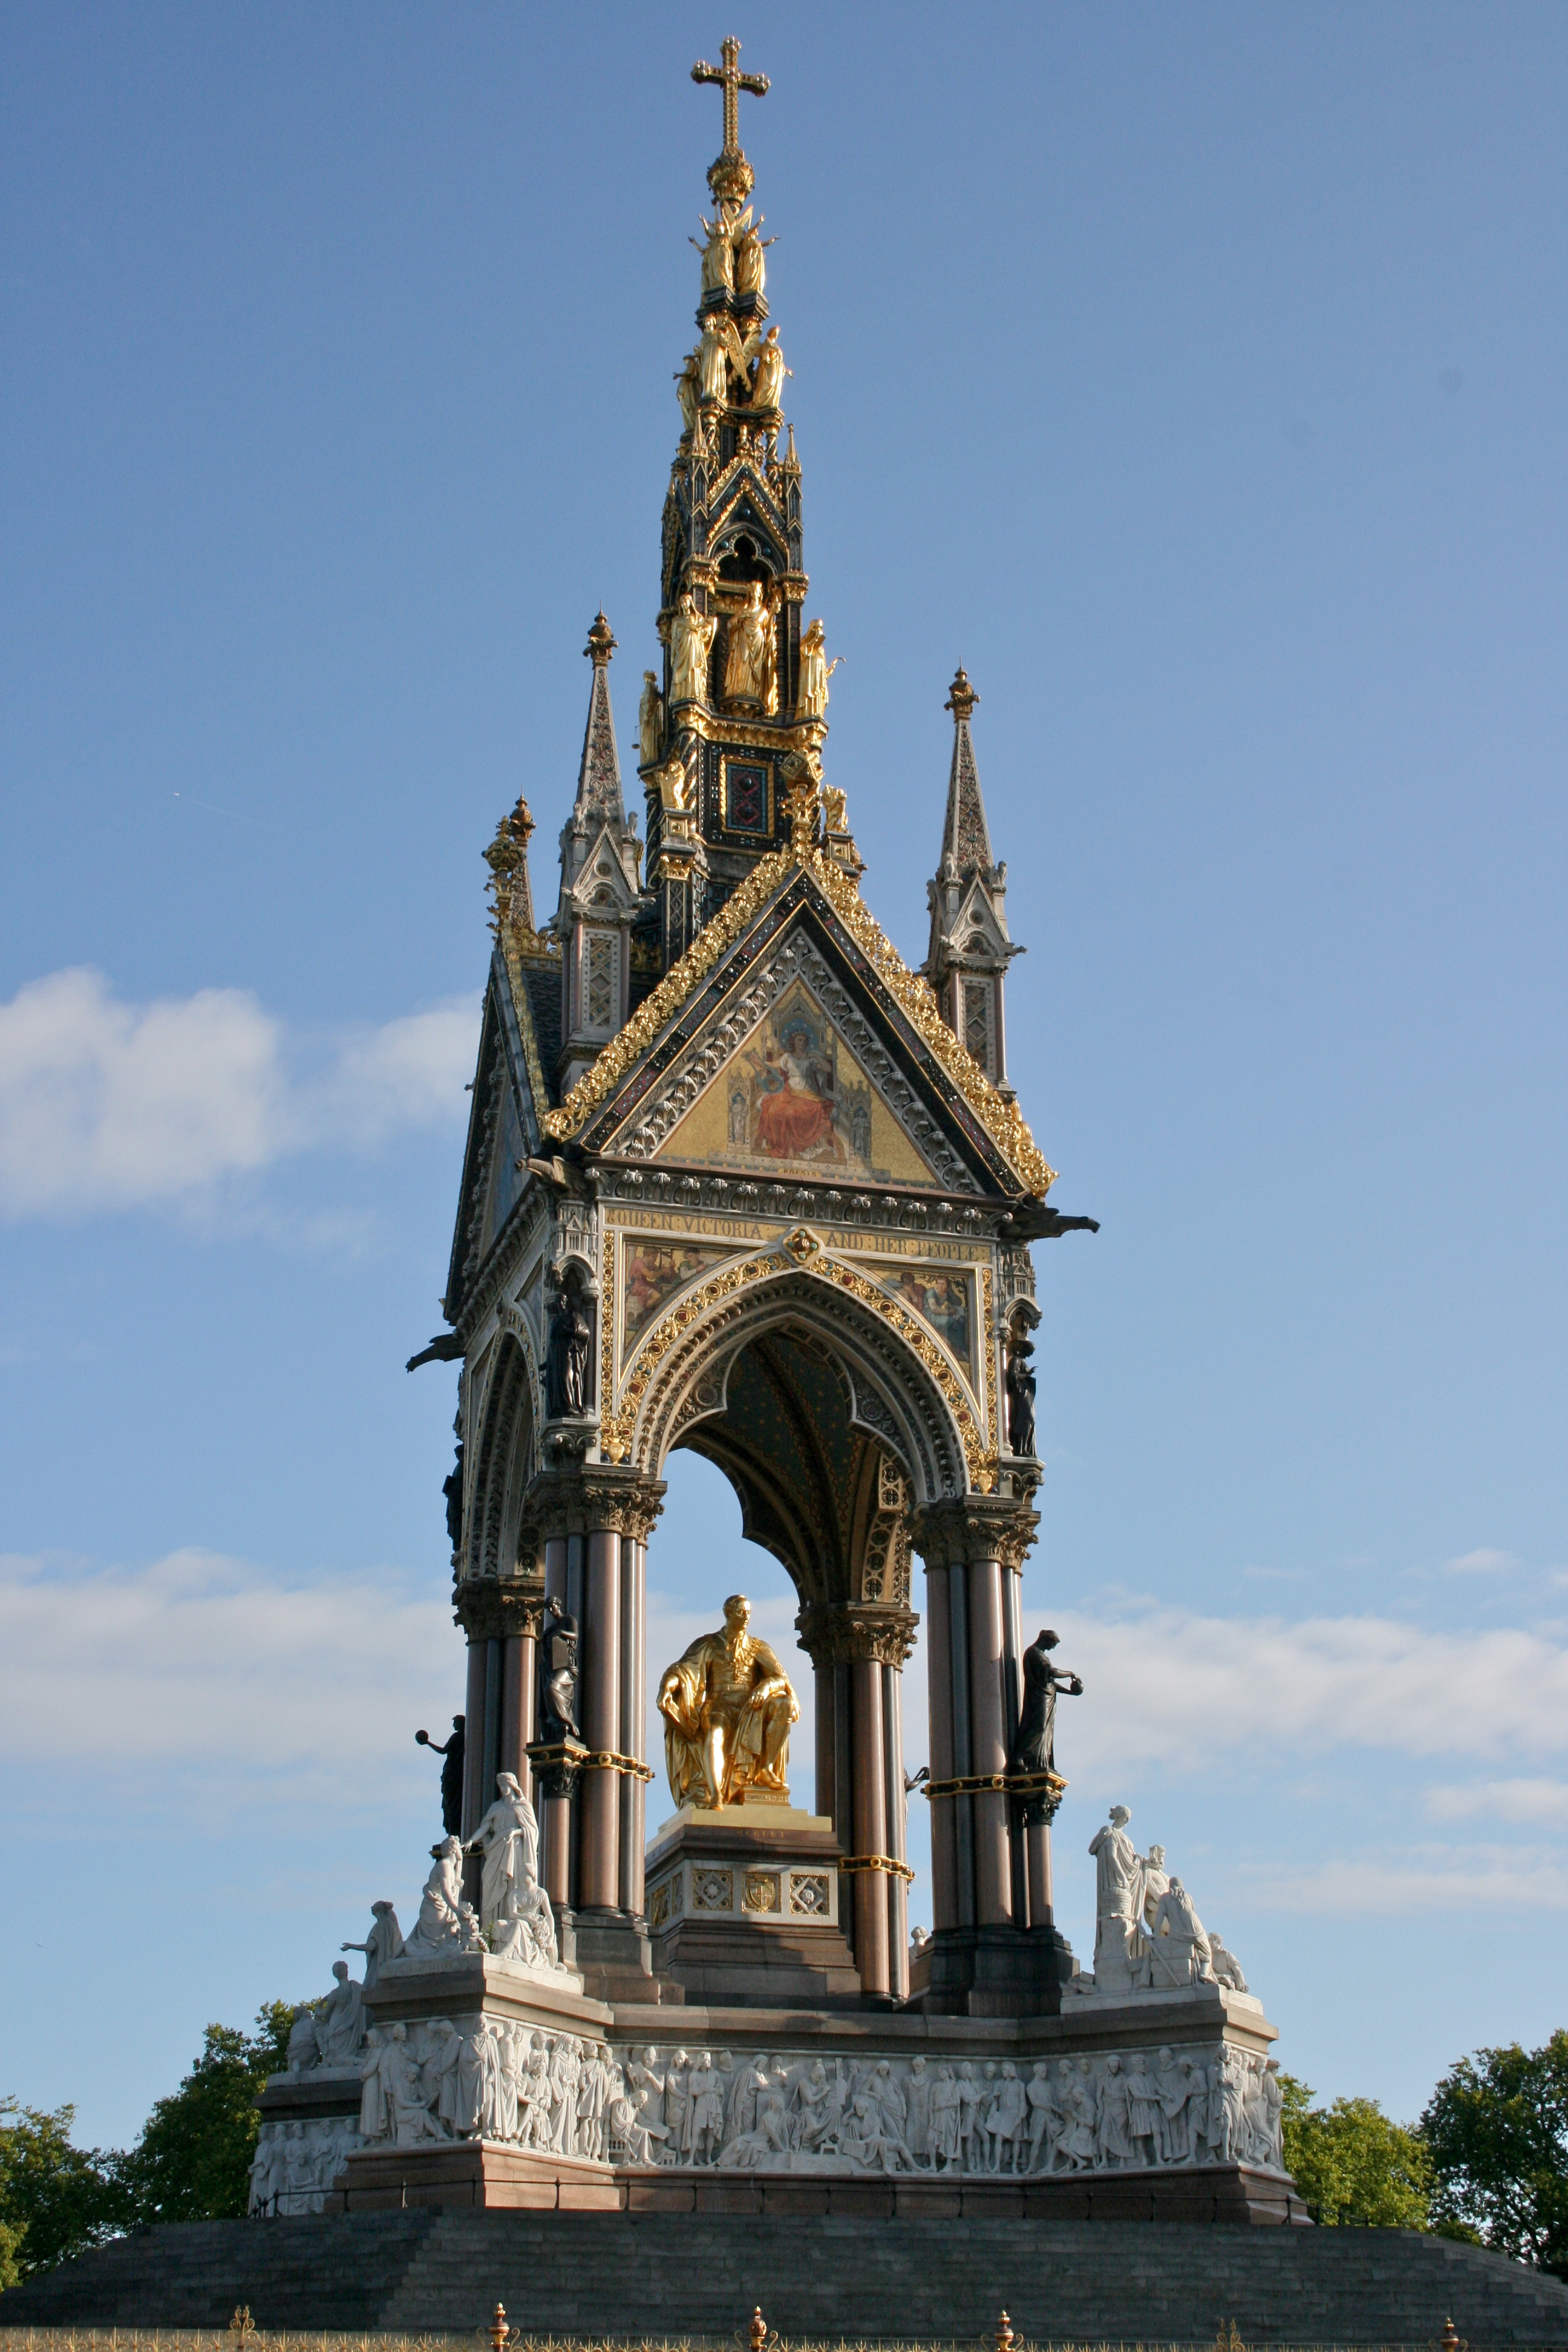 File:Albert Memorial, London 4.jpg - Wikimedia Commons